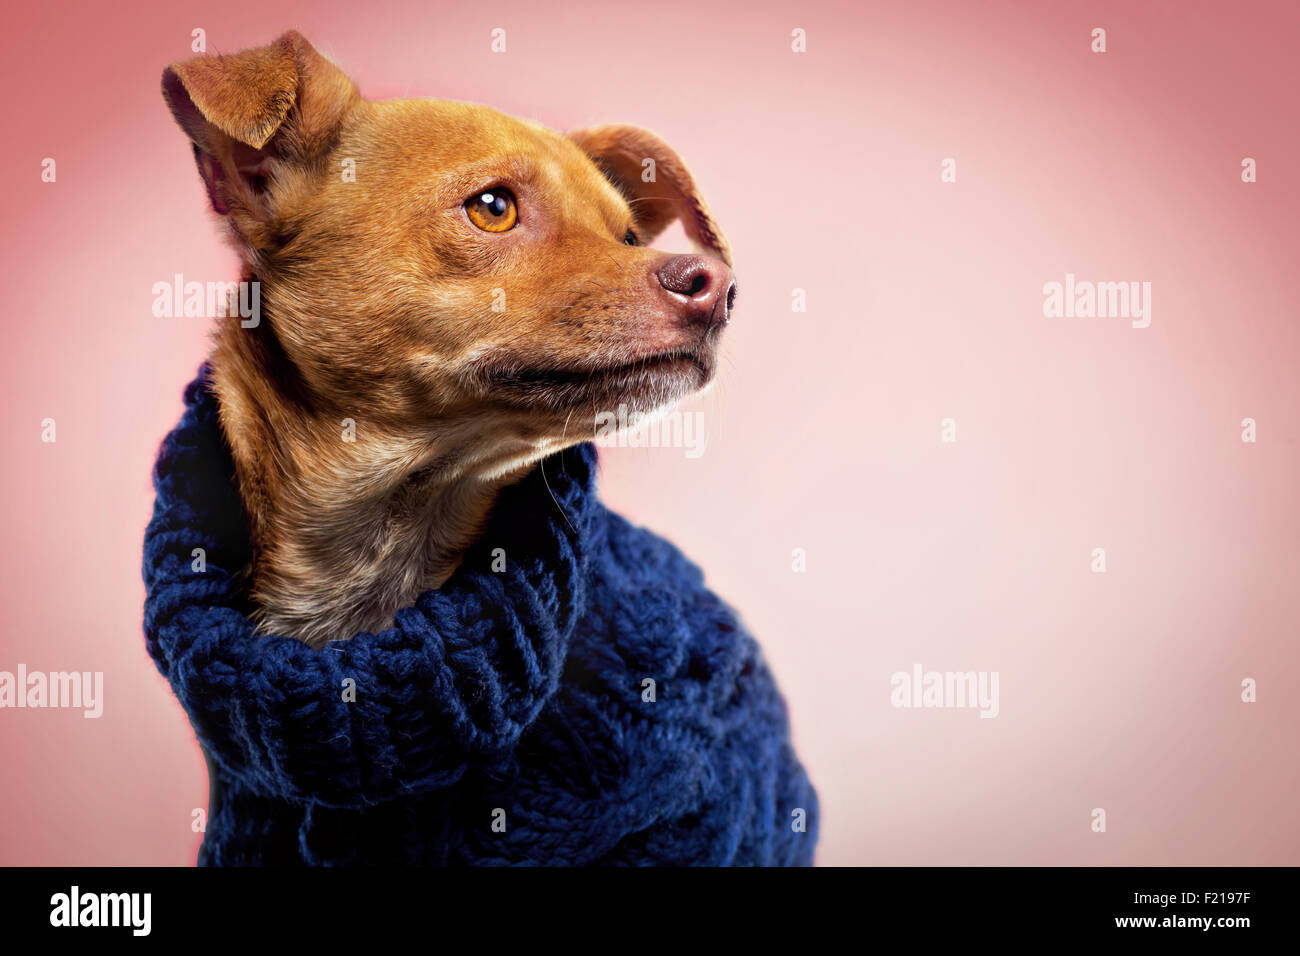 Ginger chihuahua dog in wool sweater on studio backdrop. - Stock Image